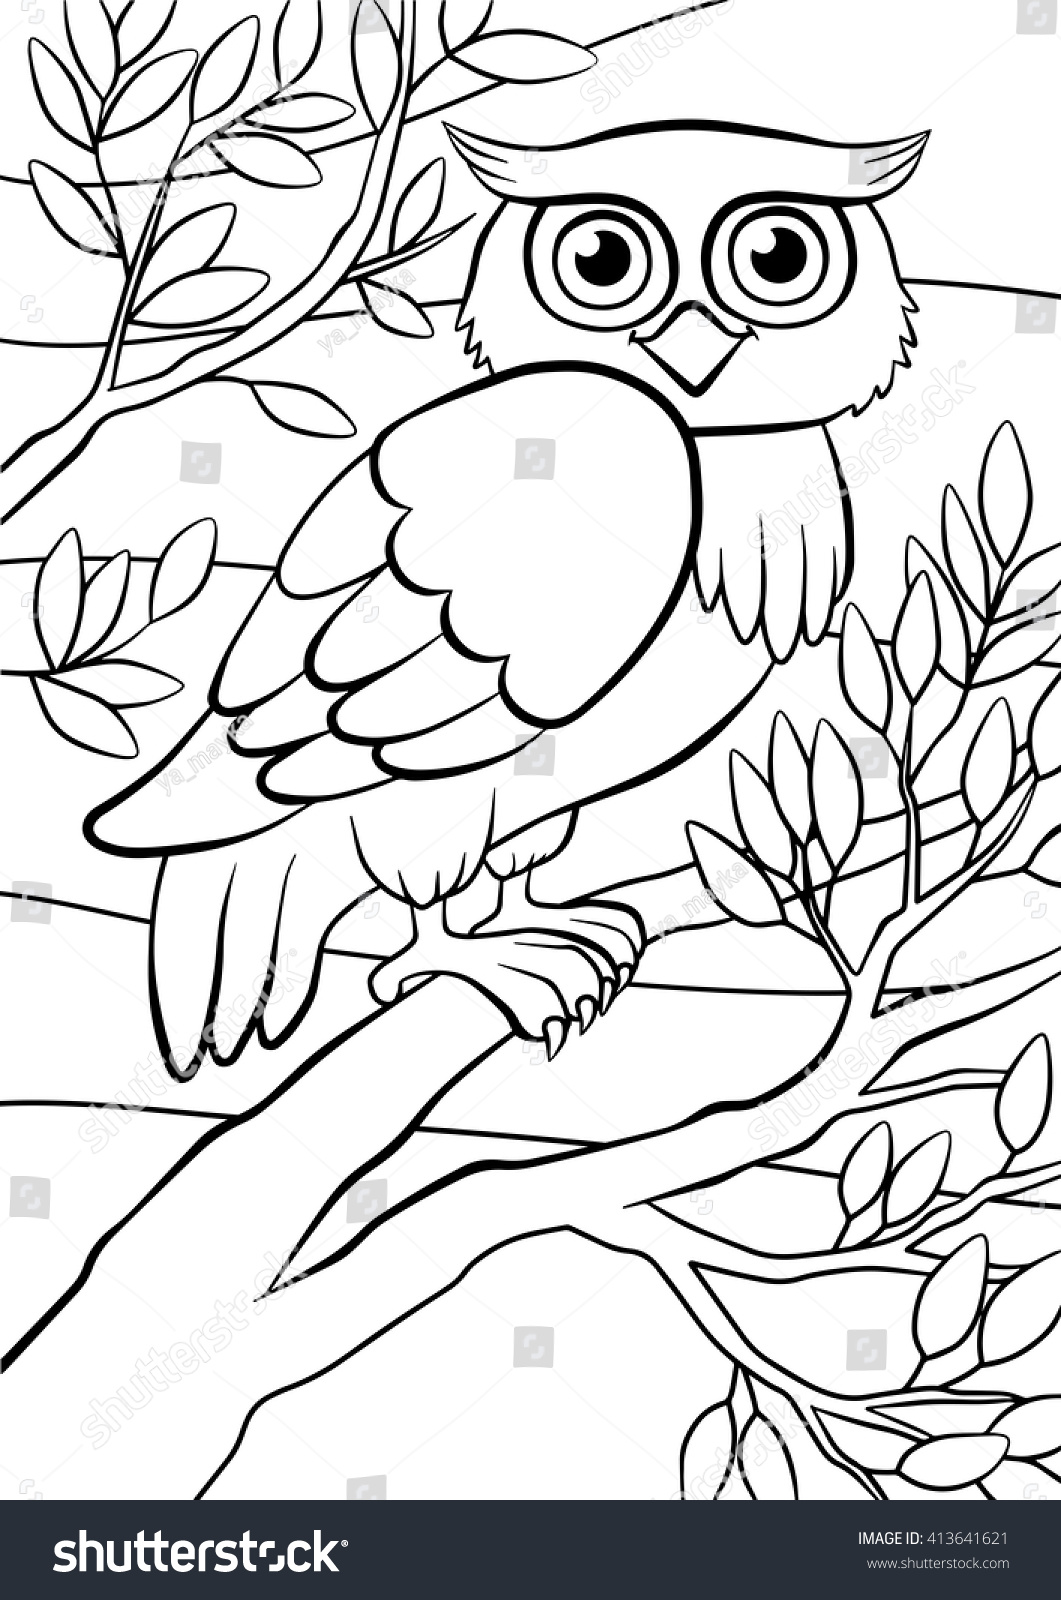 Coloring Pages Birds Cute Owl Sits Stock Vector (2018) 413641621 ...